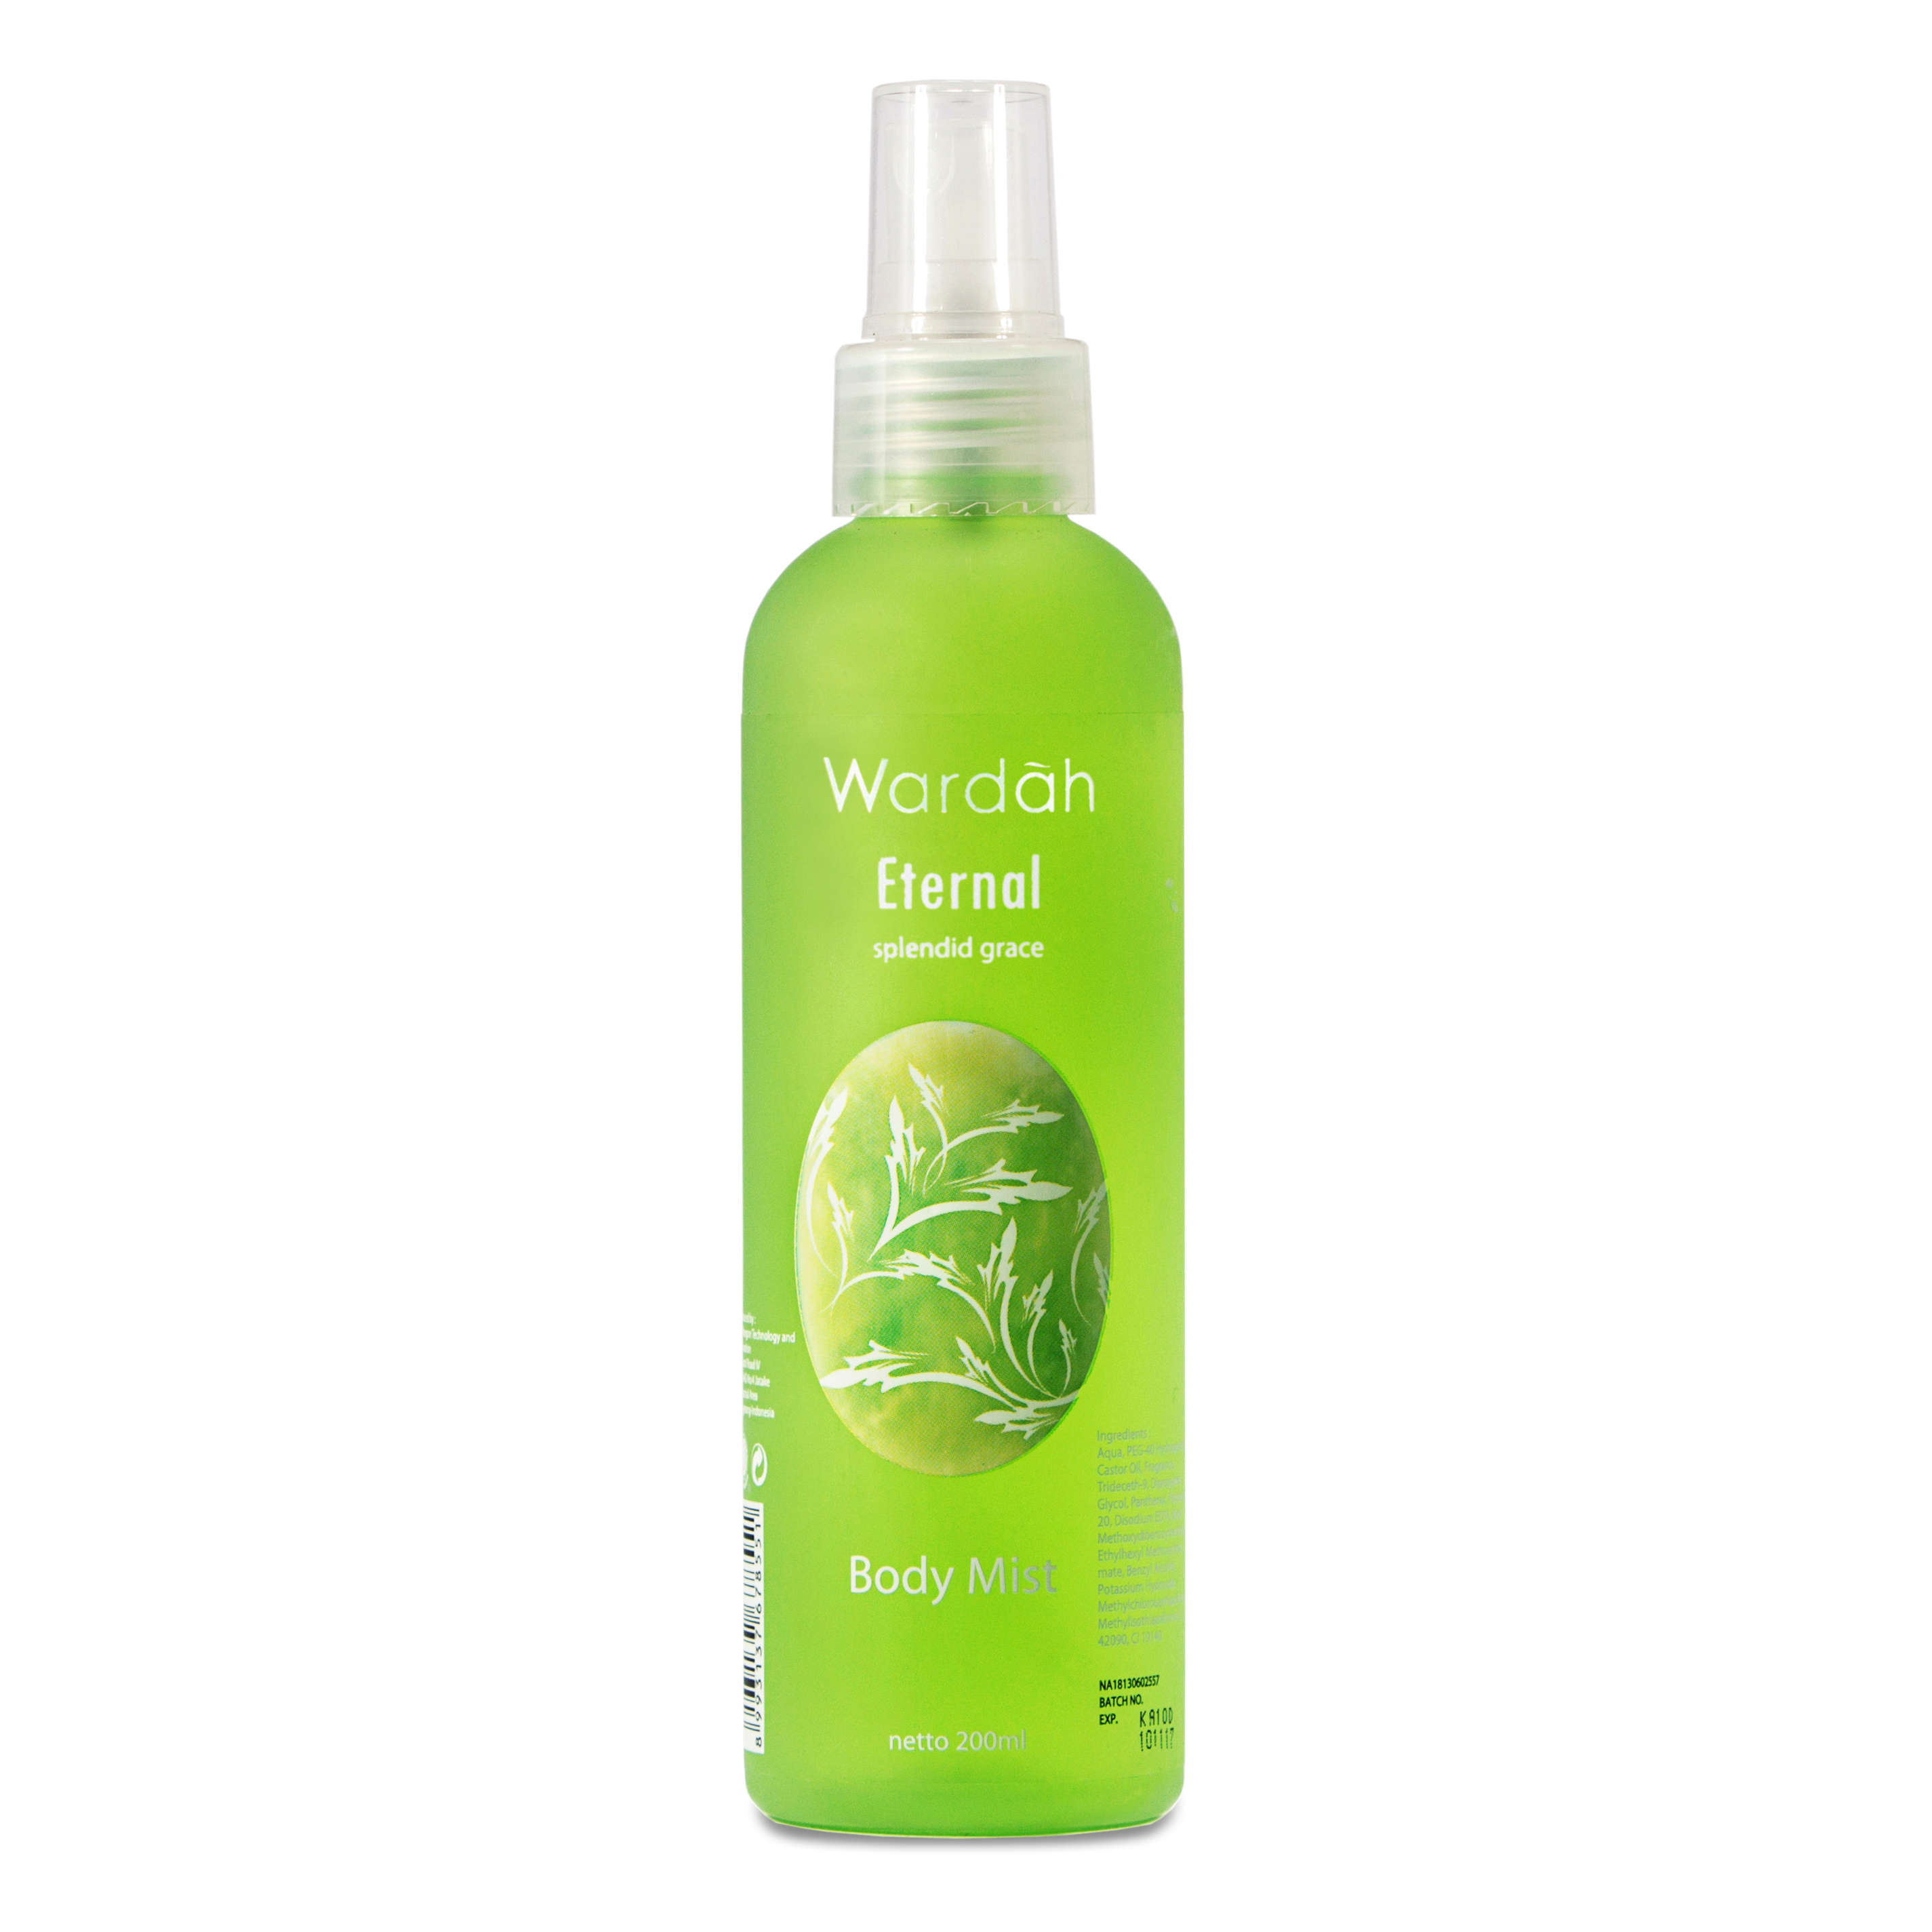 Wardah Body Mist Scentsation Eternal 200 Ml